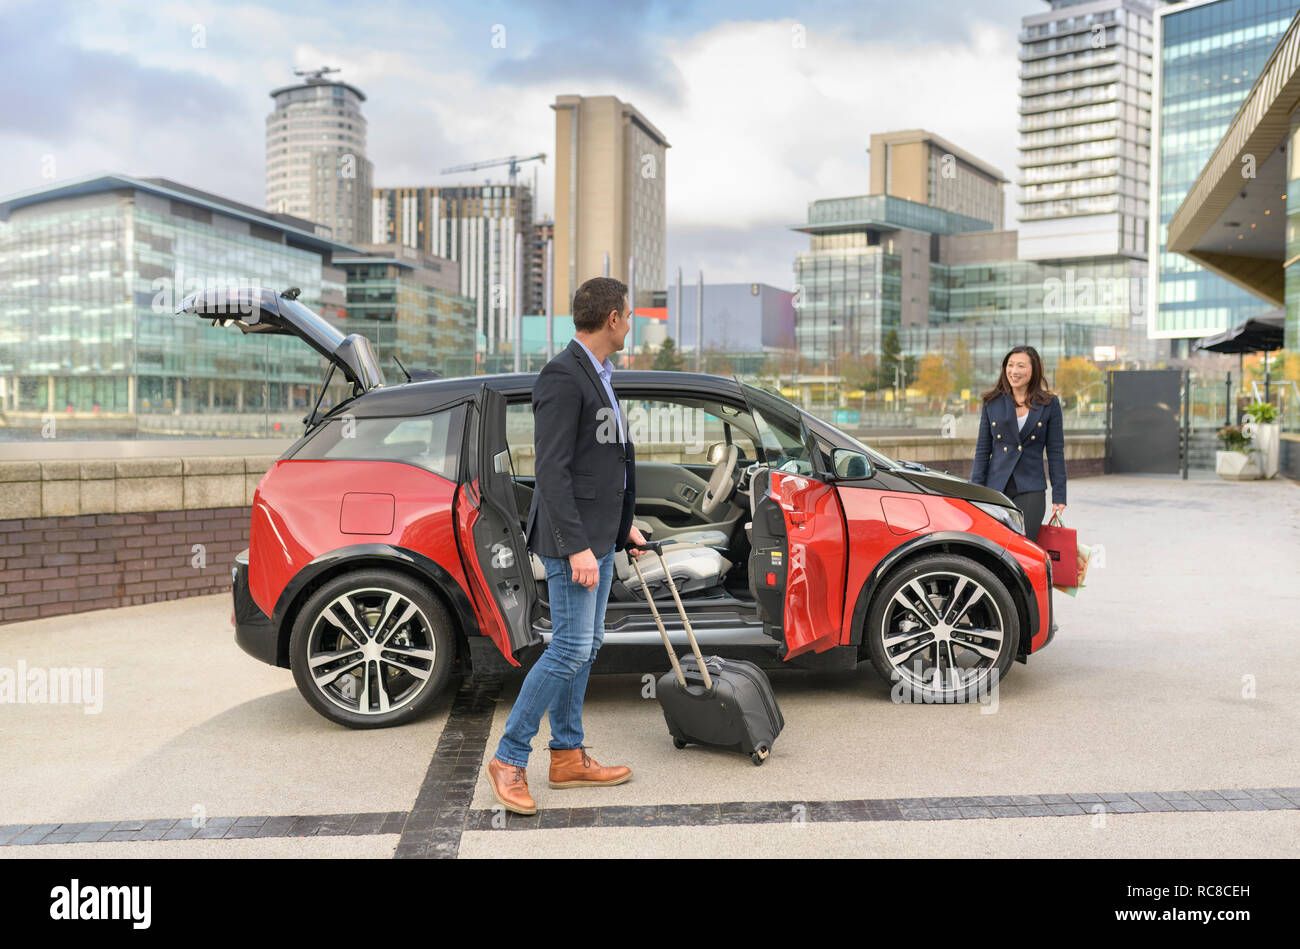 Man and woman with parked electric car, Manchester, UK - Stock Image